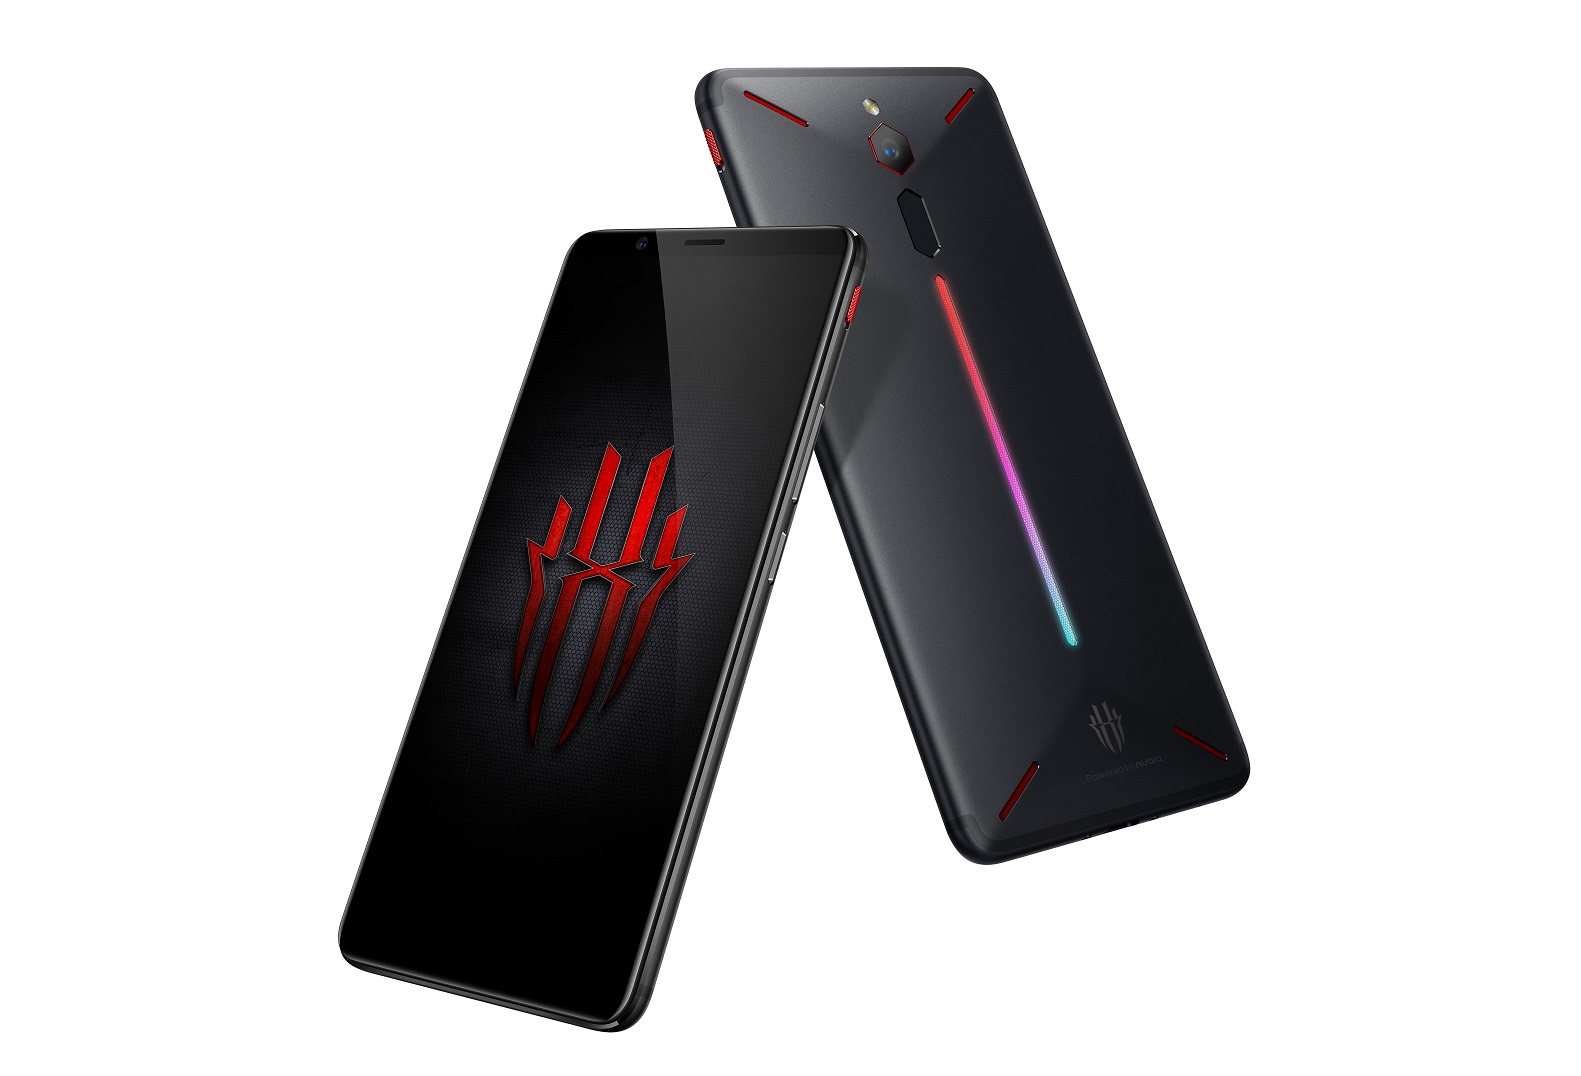 Nubia Red Magic gaming smartphone launched: Price, specifications and features